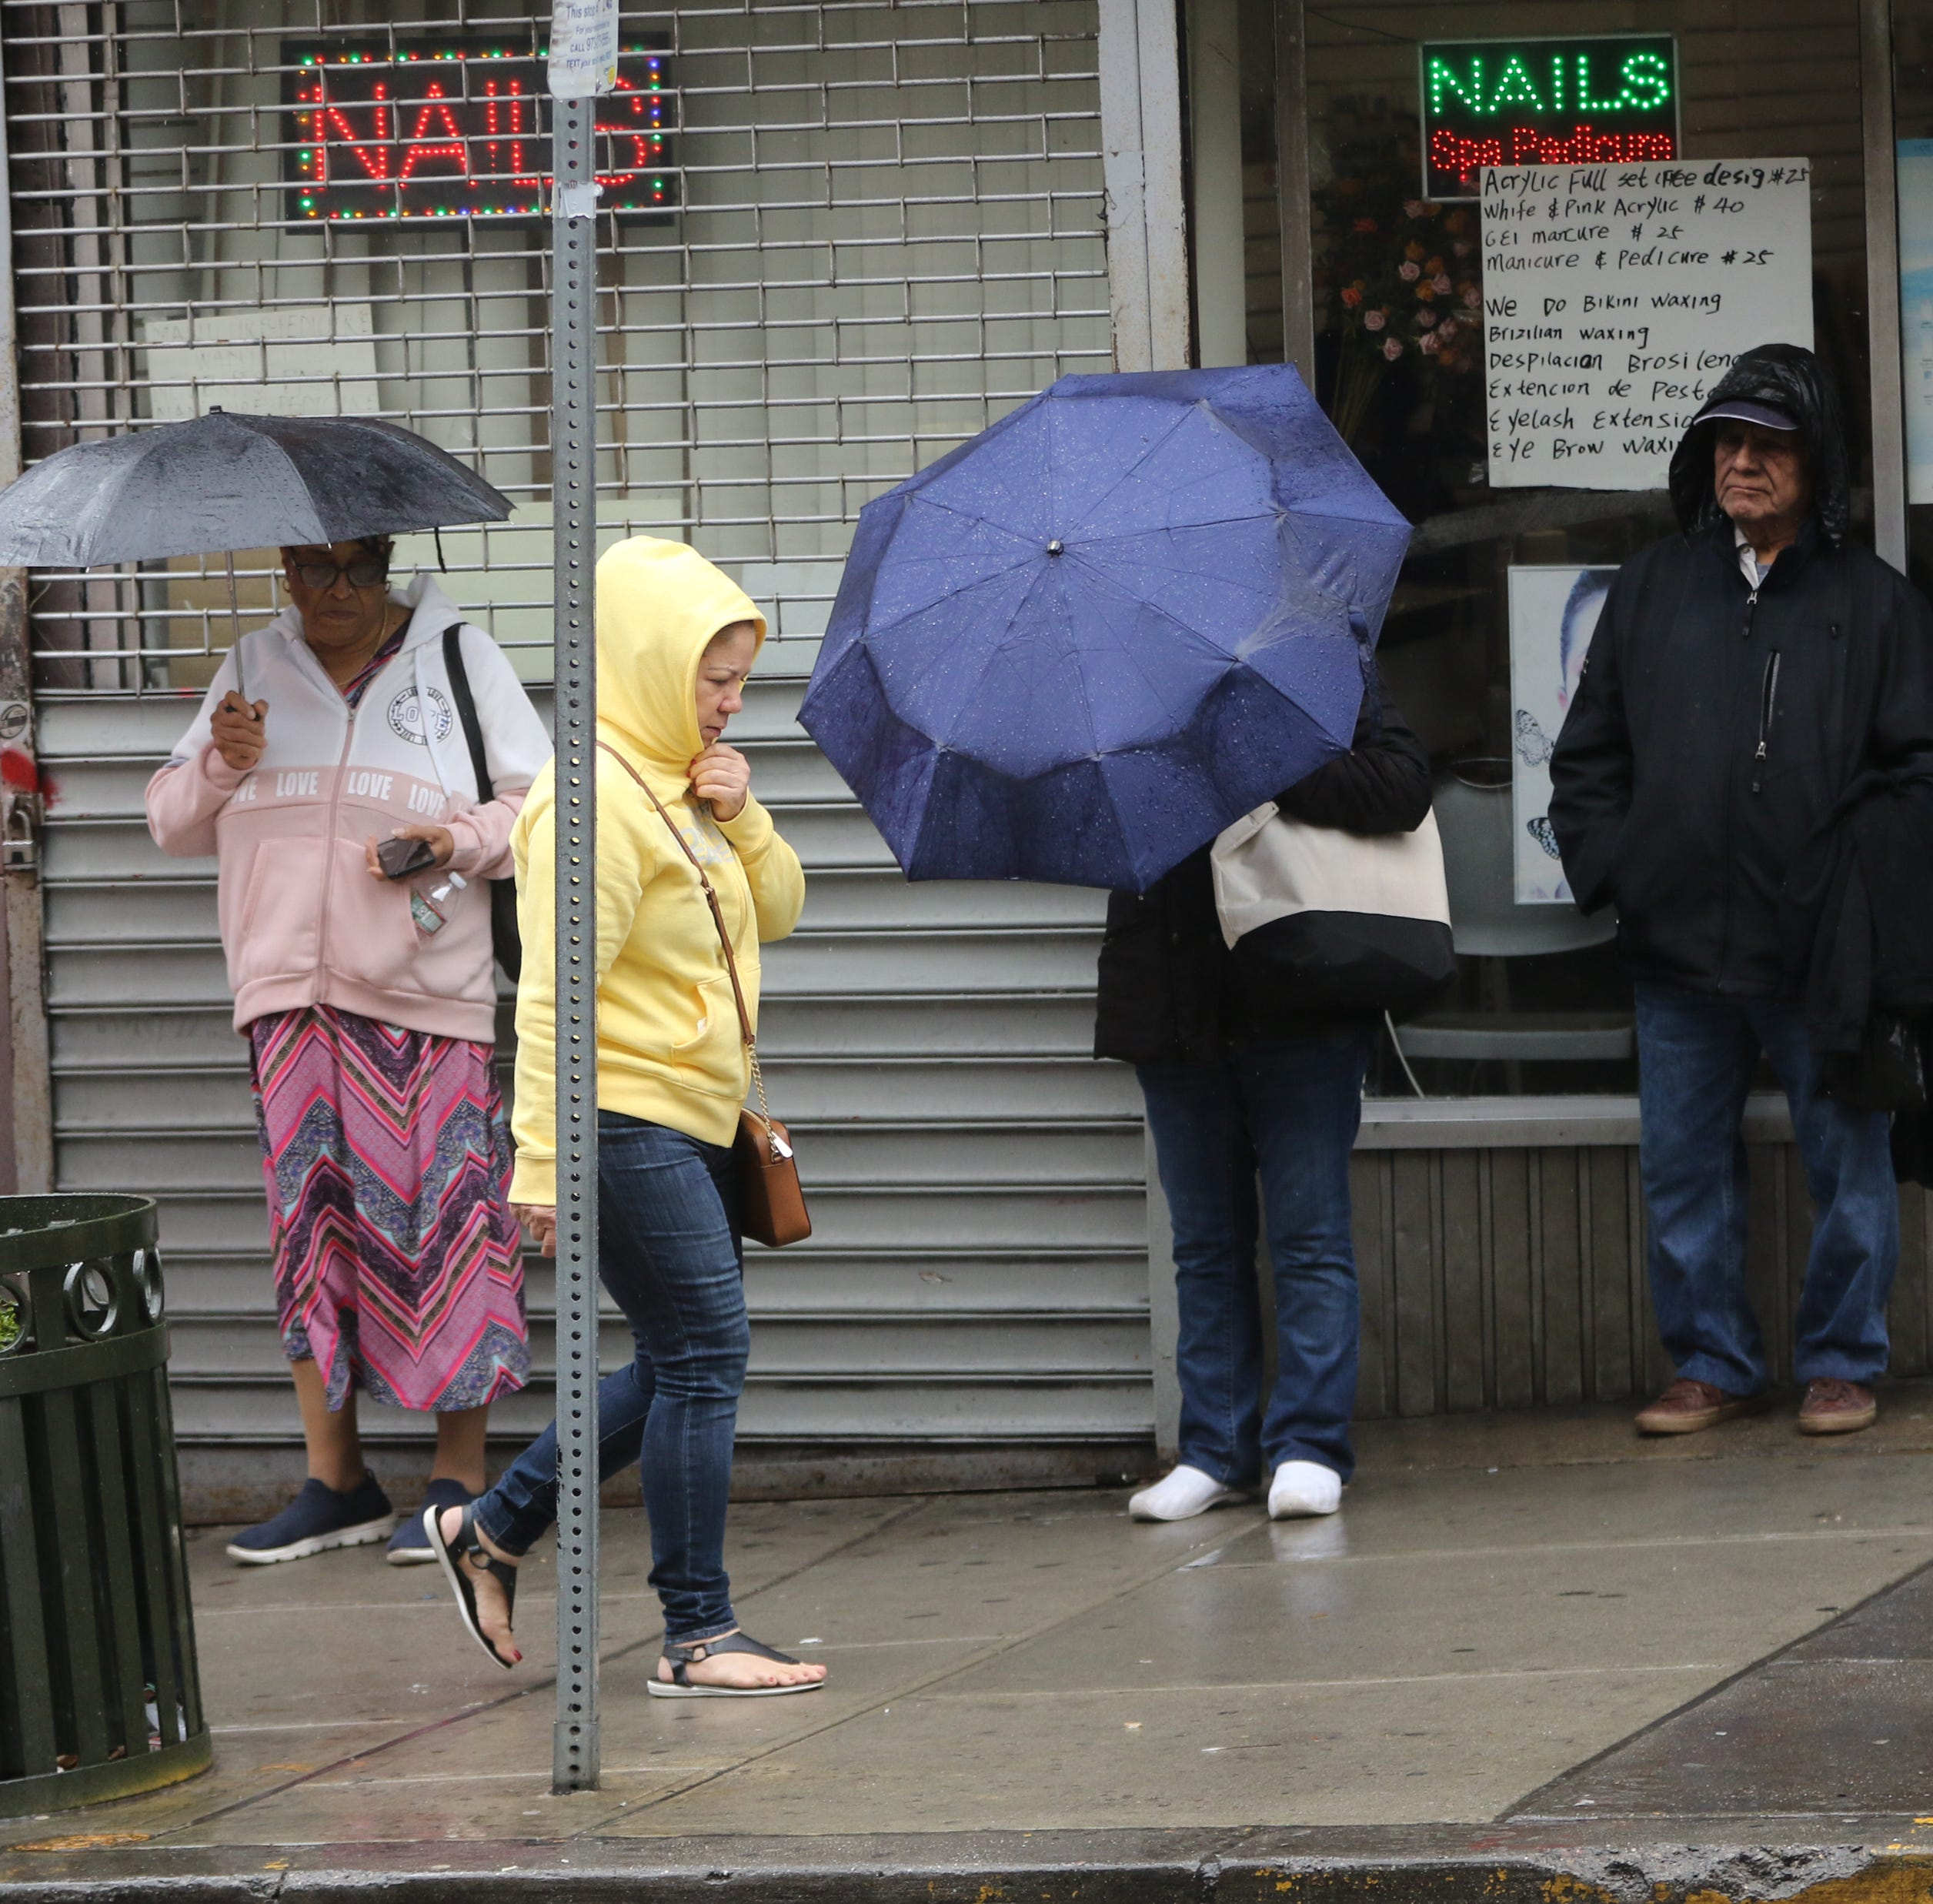 Flash flood watch issued for North Jersey, heavy rain expected throughout NJ